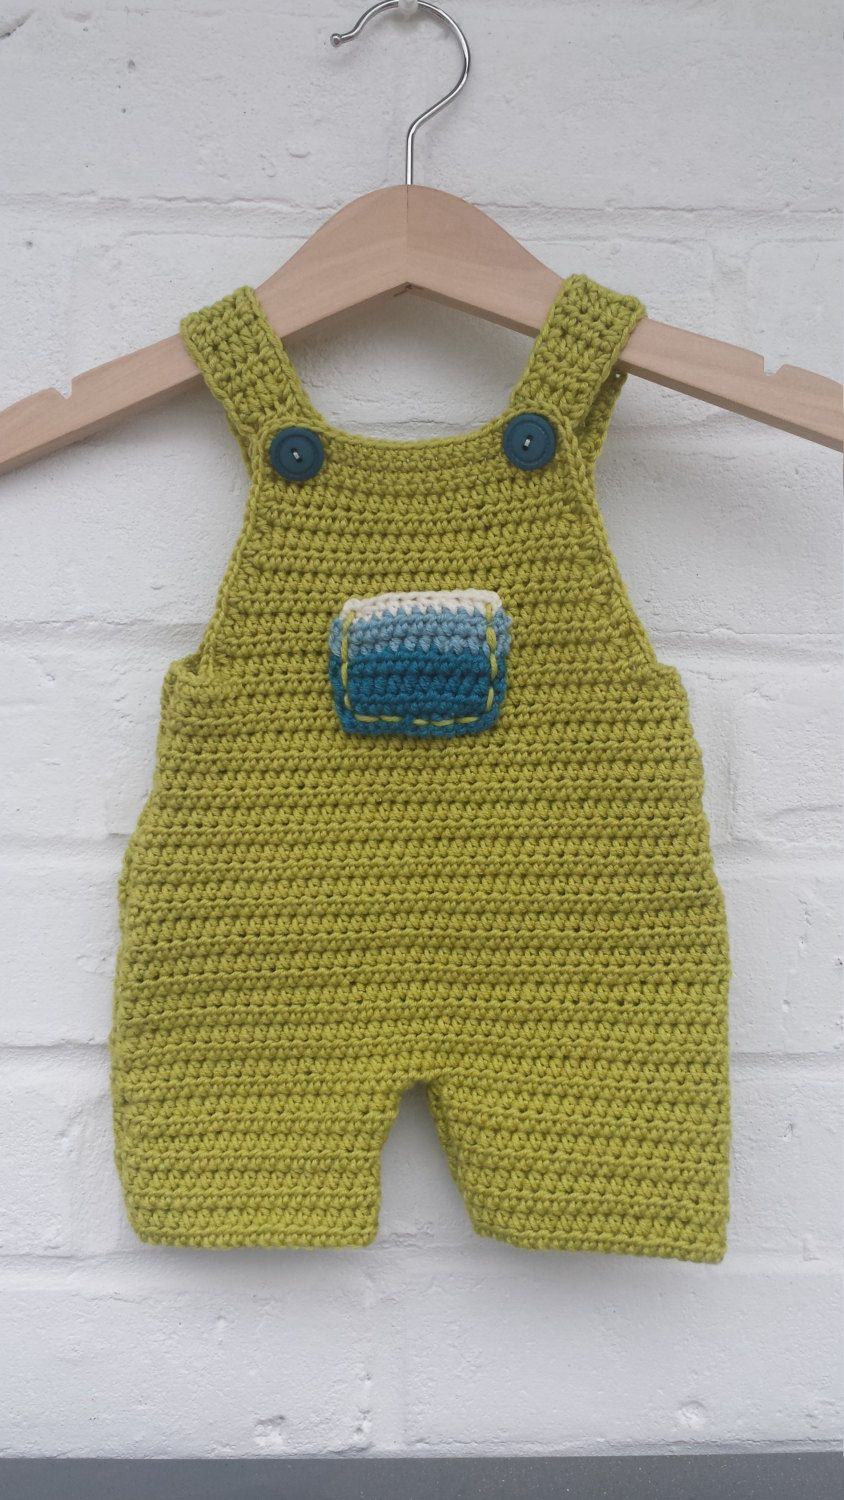 Newborn crochet cashmere dungarees by BennyRensCreations on Etsy ...